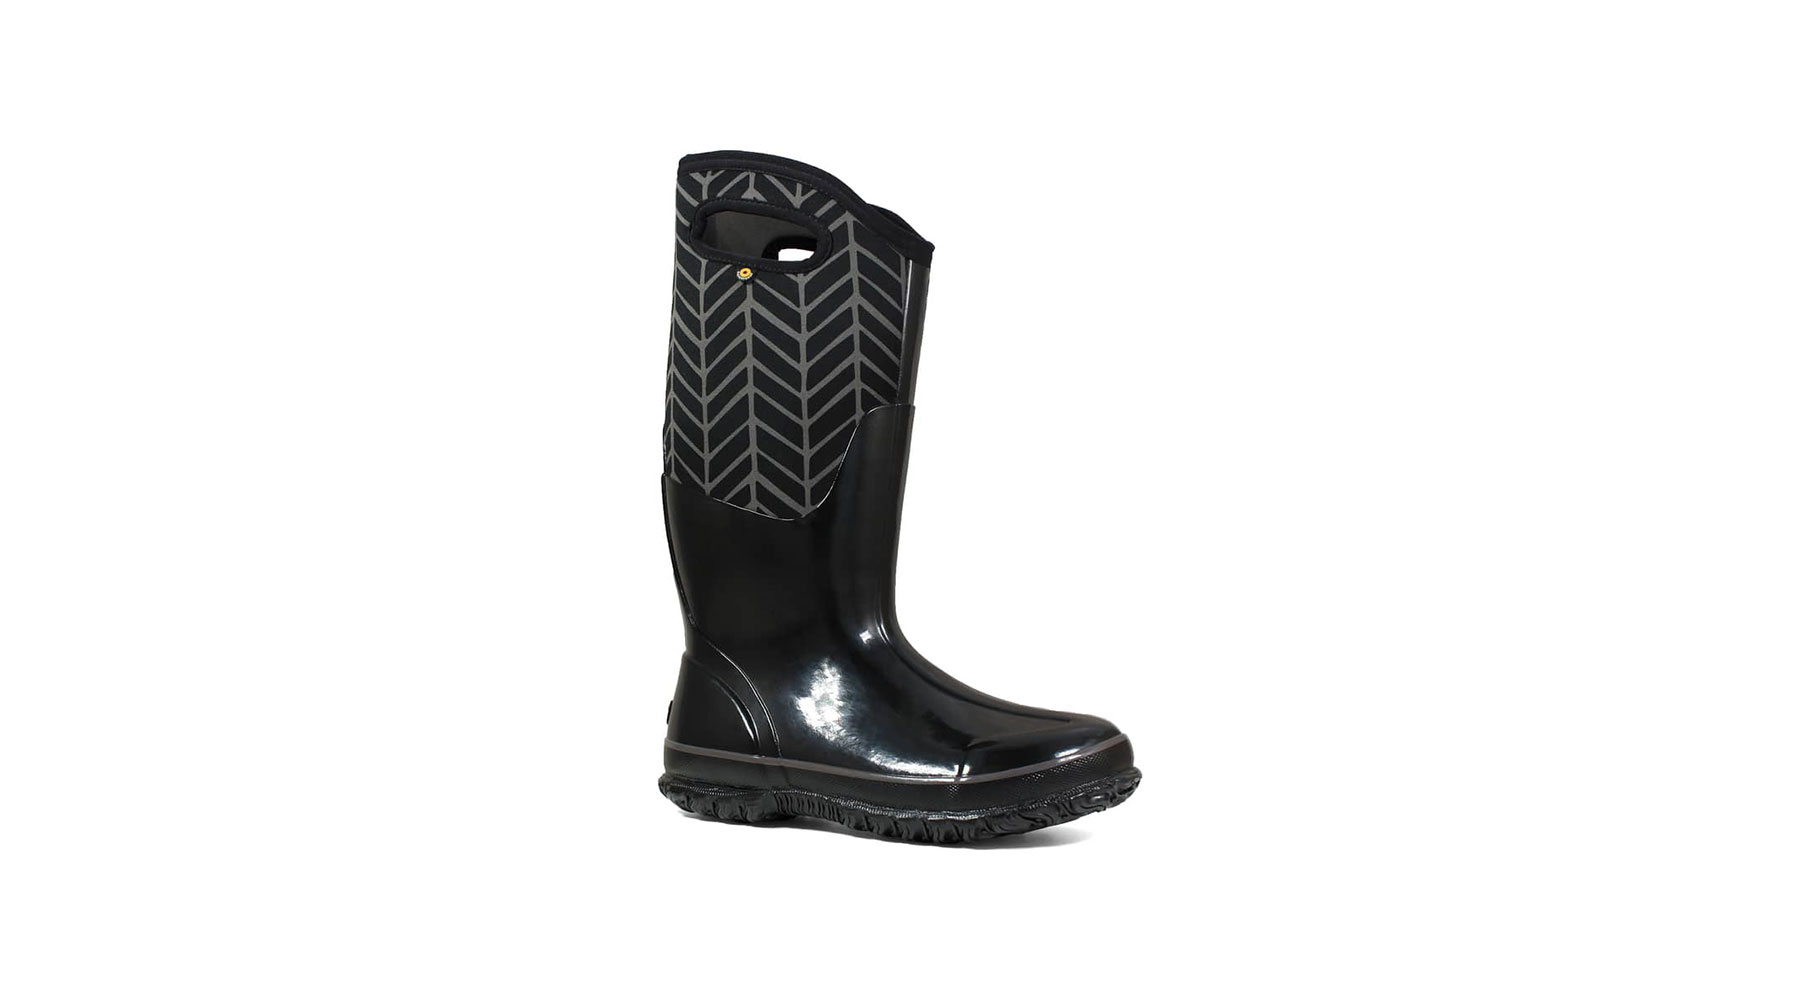 Bogs Classic Tall Badge Waterproof Snow Boots